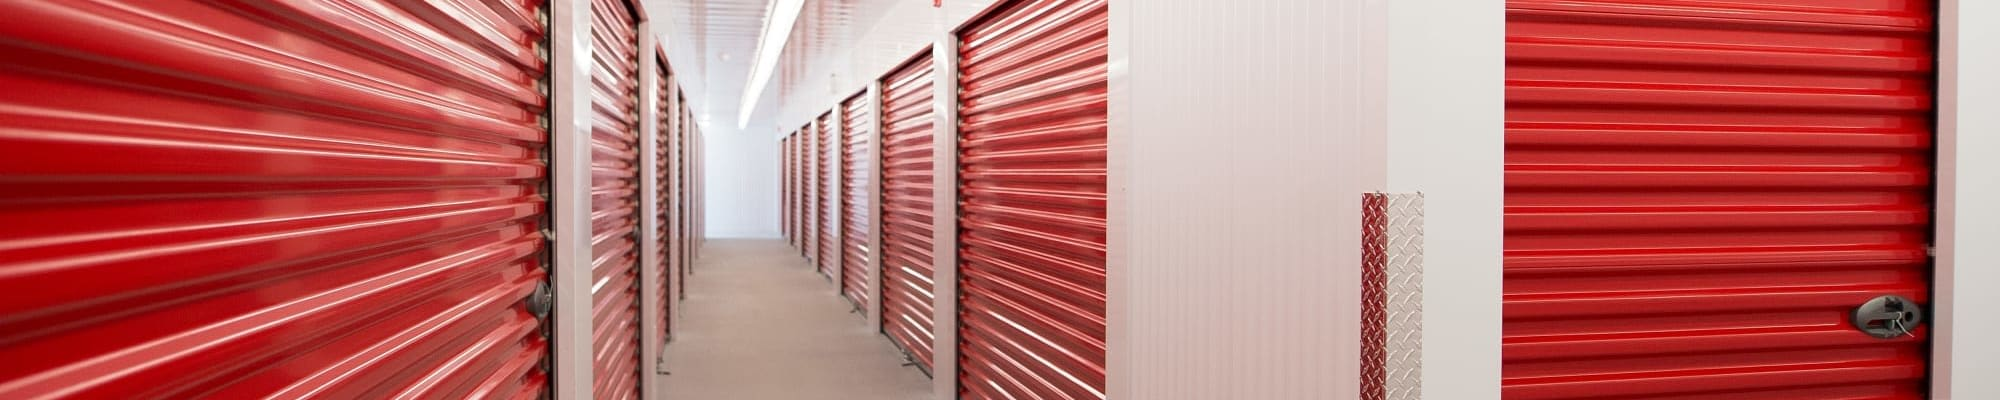 Features at Mini Storage Depot in Knoxville, Tennessee